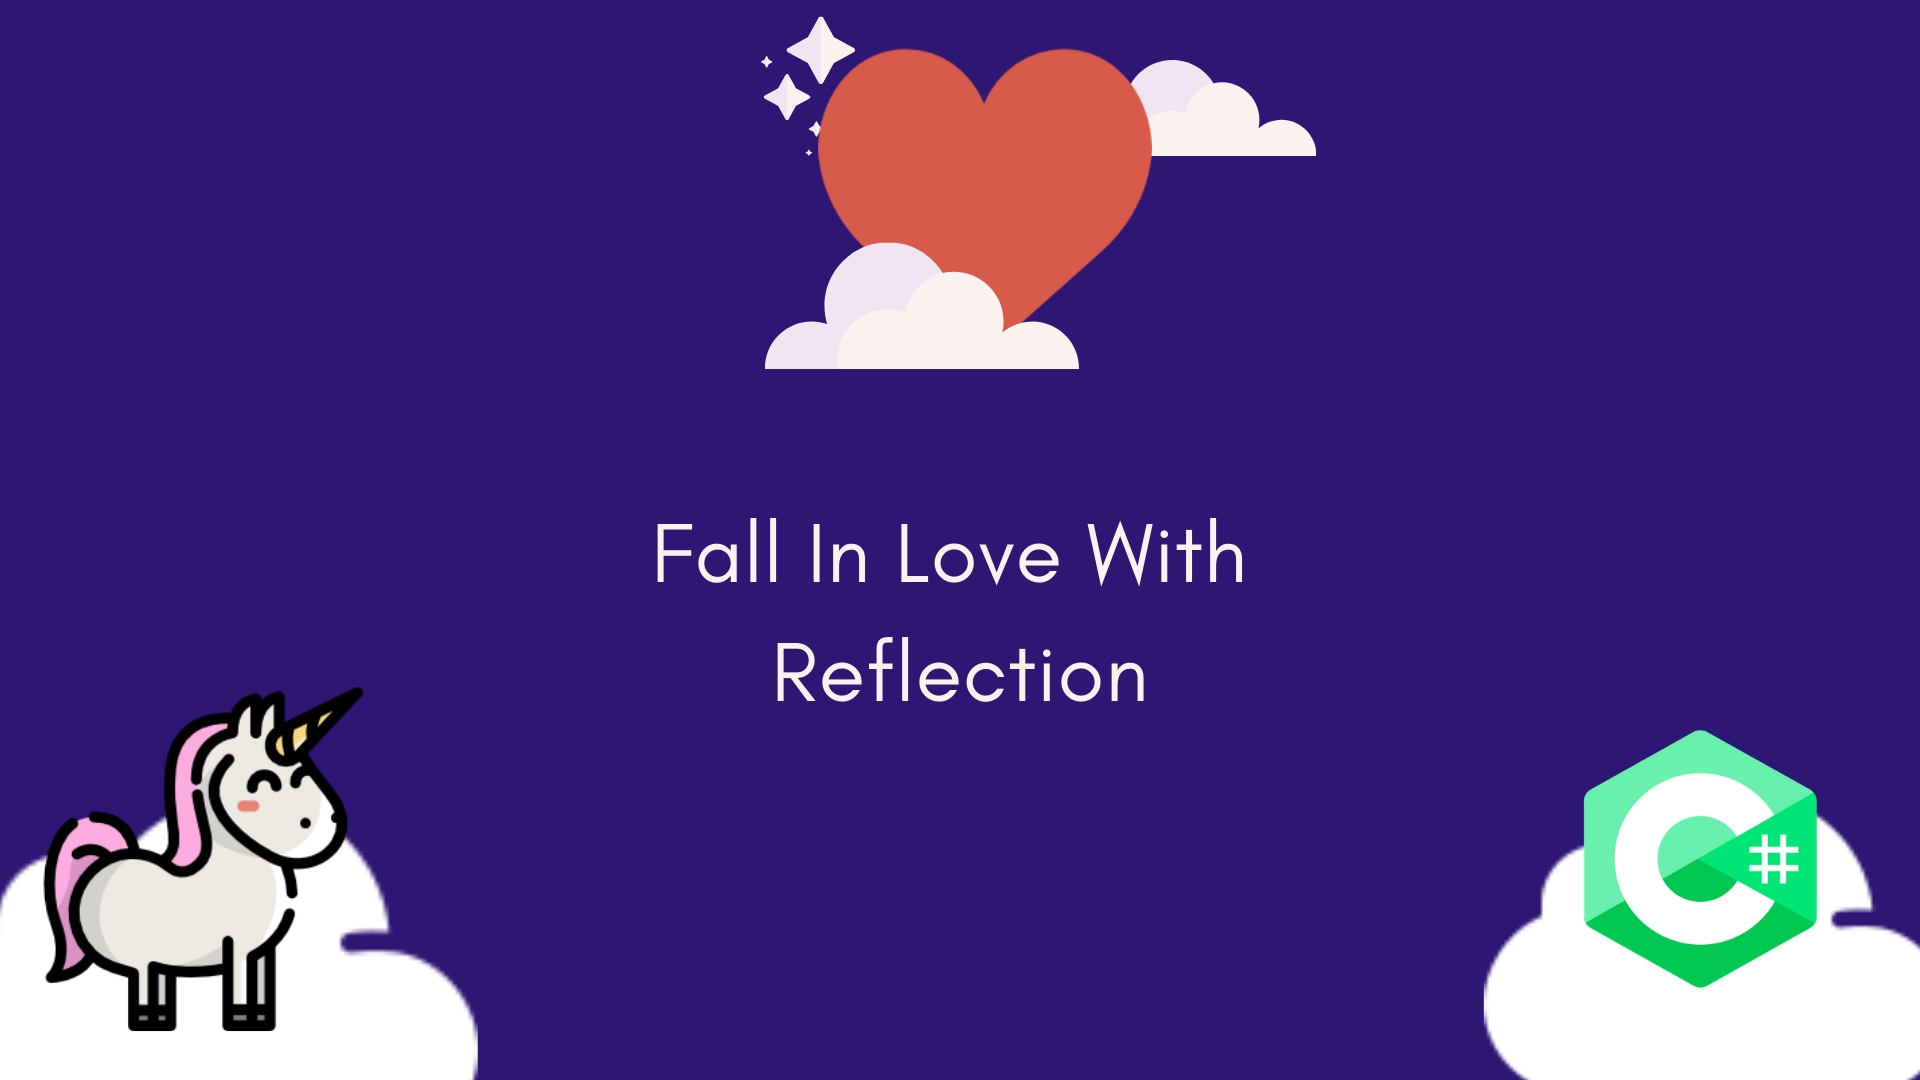 Fall In Love With Reflection